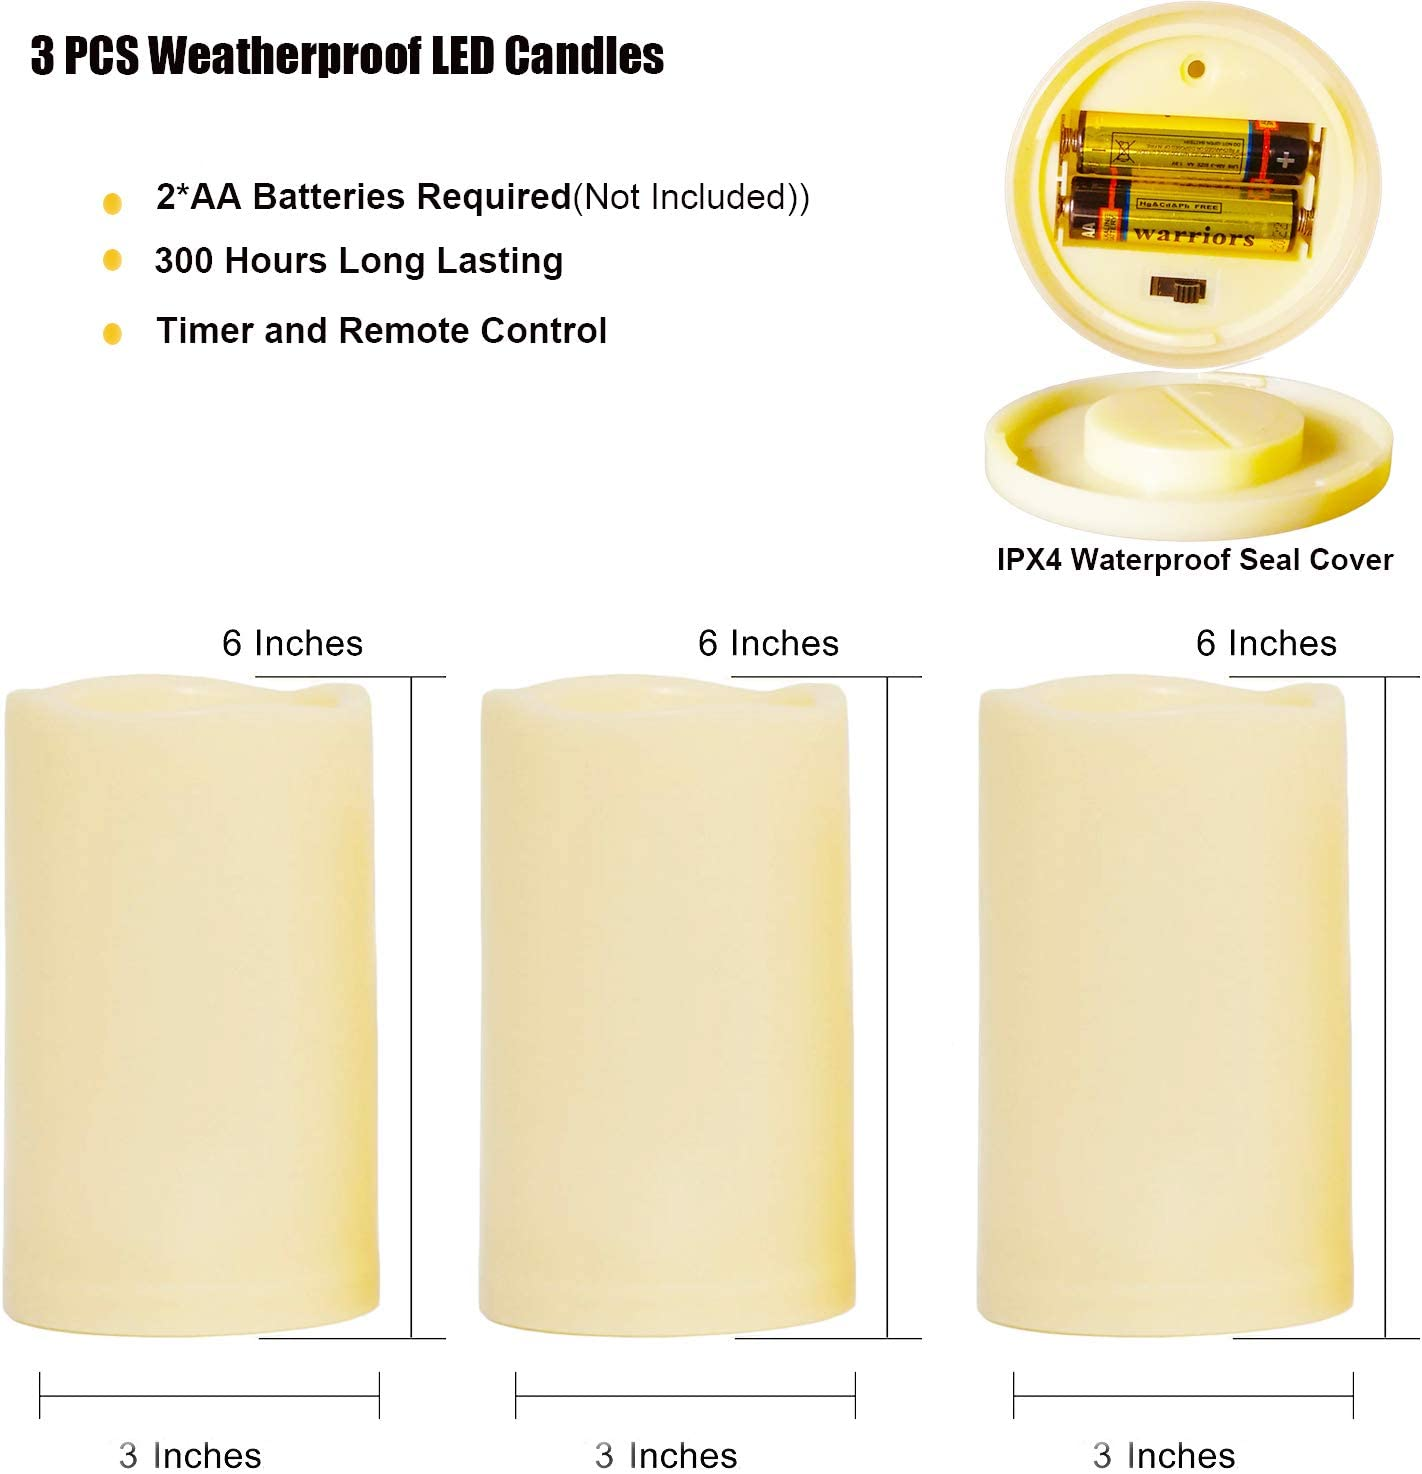 H 4 5 6x D 3Set of 3 Battery Operated LED Flickering Candles with Amber Yellow Light SWEETIME Outdoor Waterproof Flameless Candles with Timer/& Remote Control